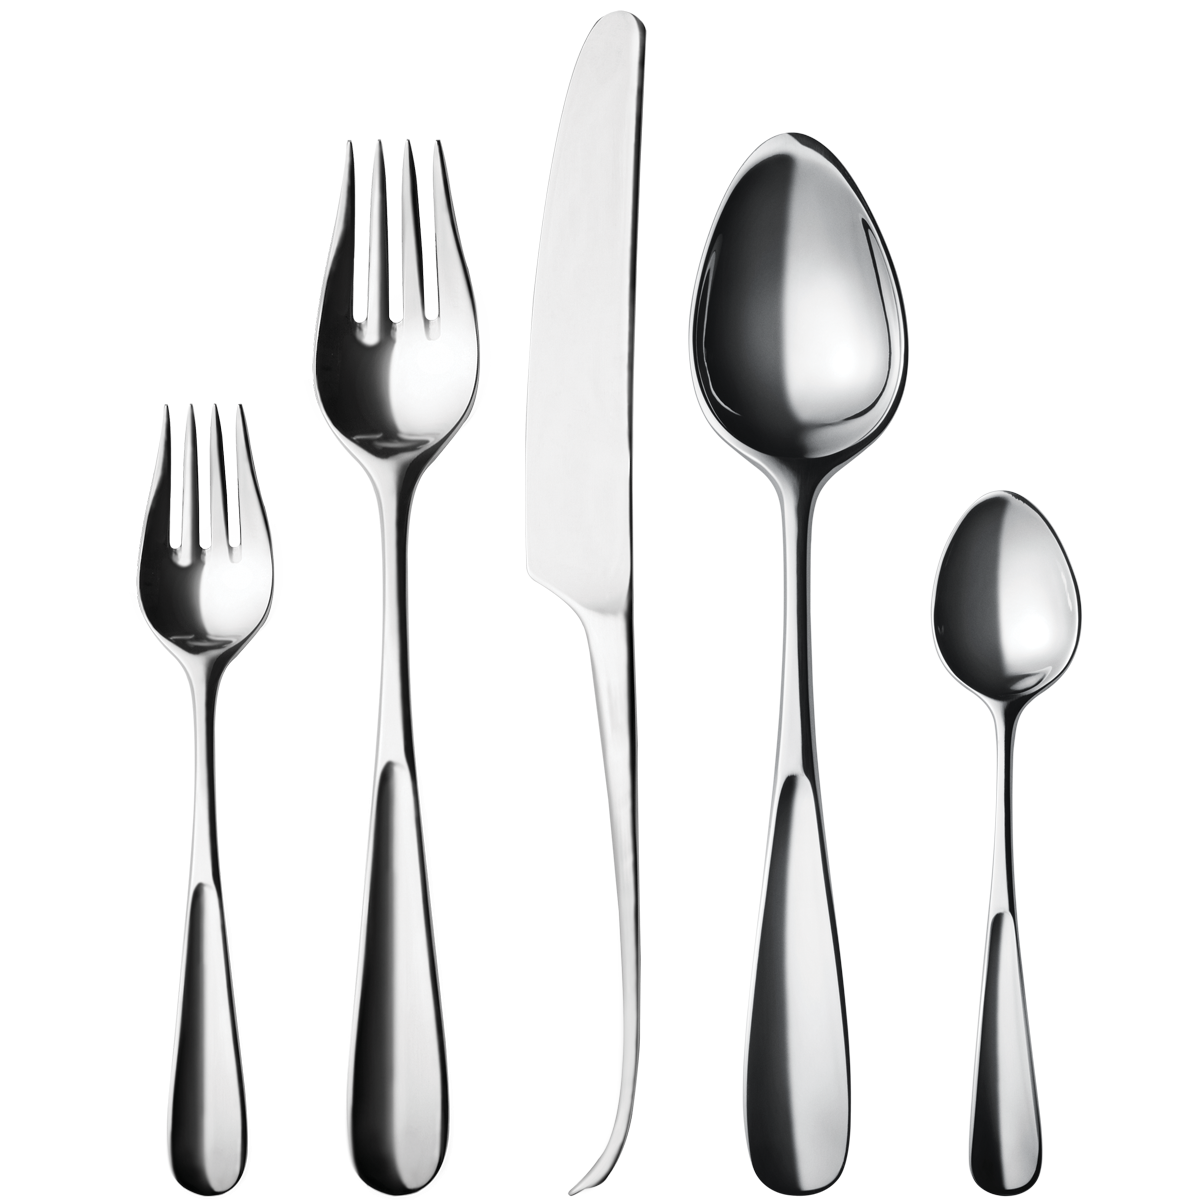 Silver clipart metal spoon Spoon Fork Spoon com PNG